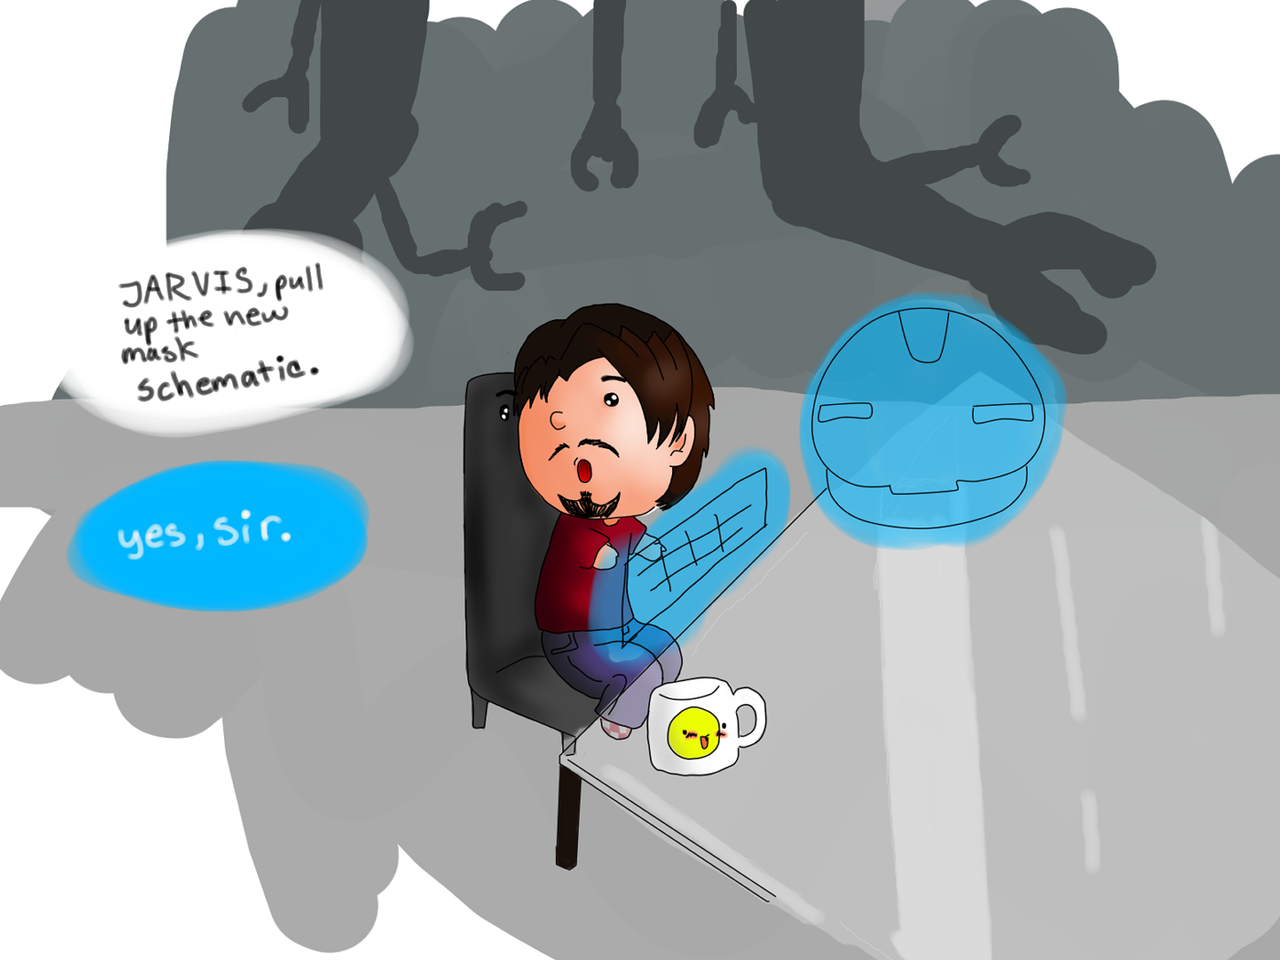 So I did a thingfor the consideration of the Avengers fandom: Chibi Tony